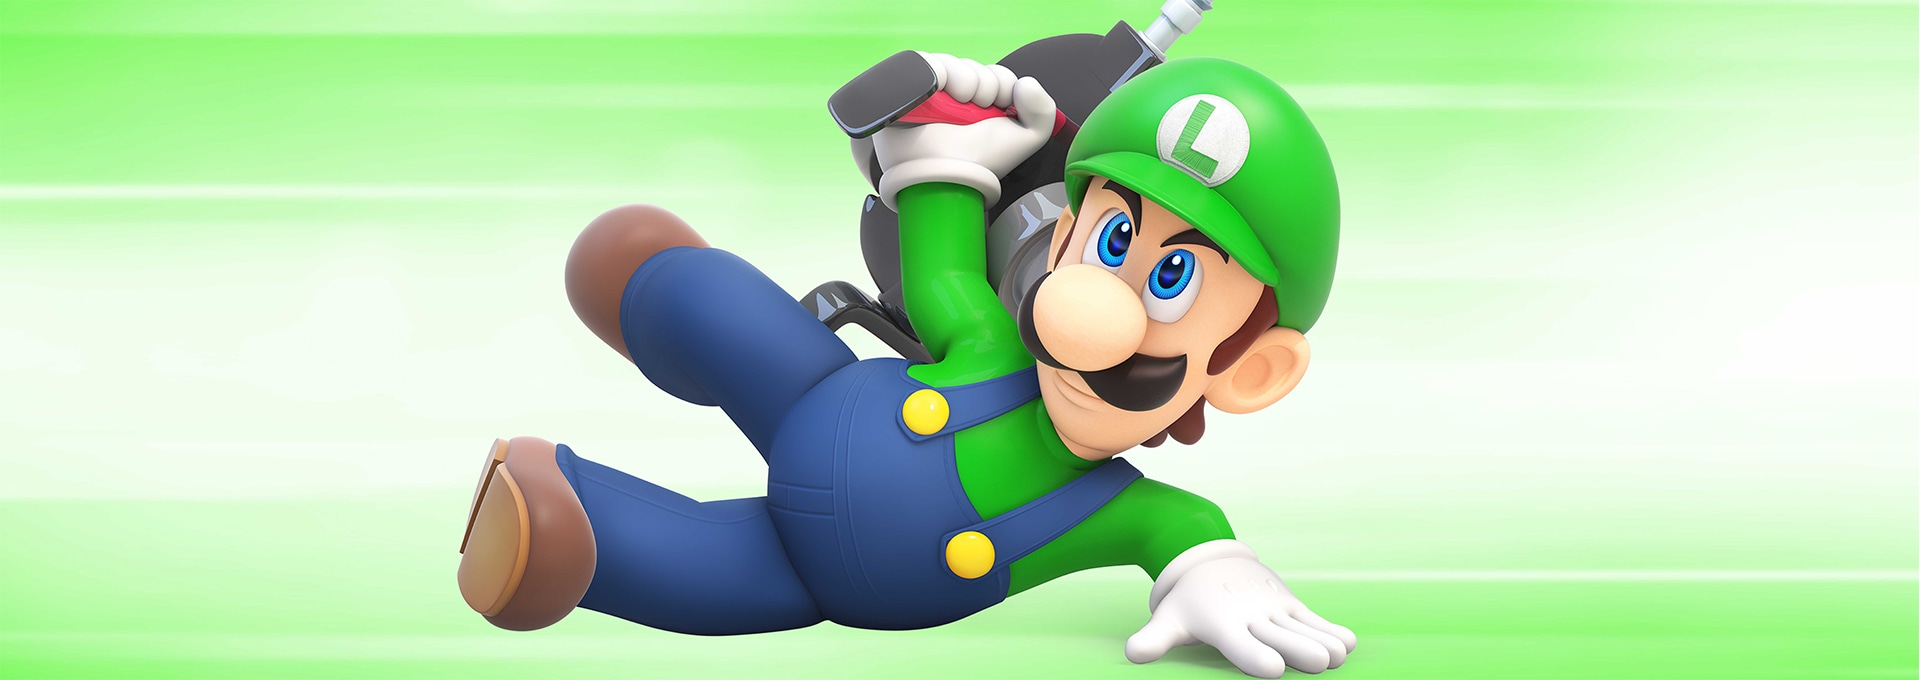 luigi bring clear sightedness and precision to your team mario